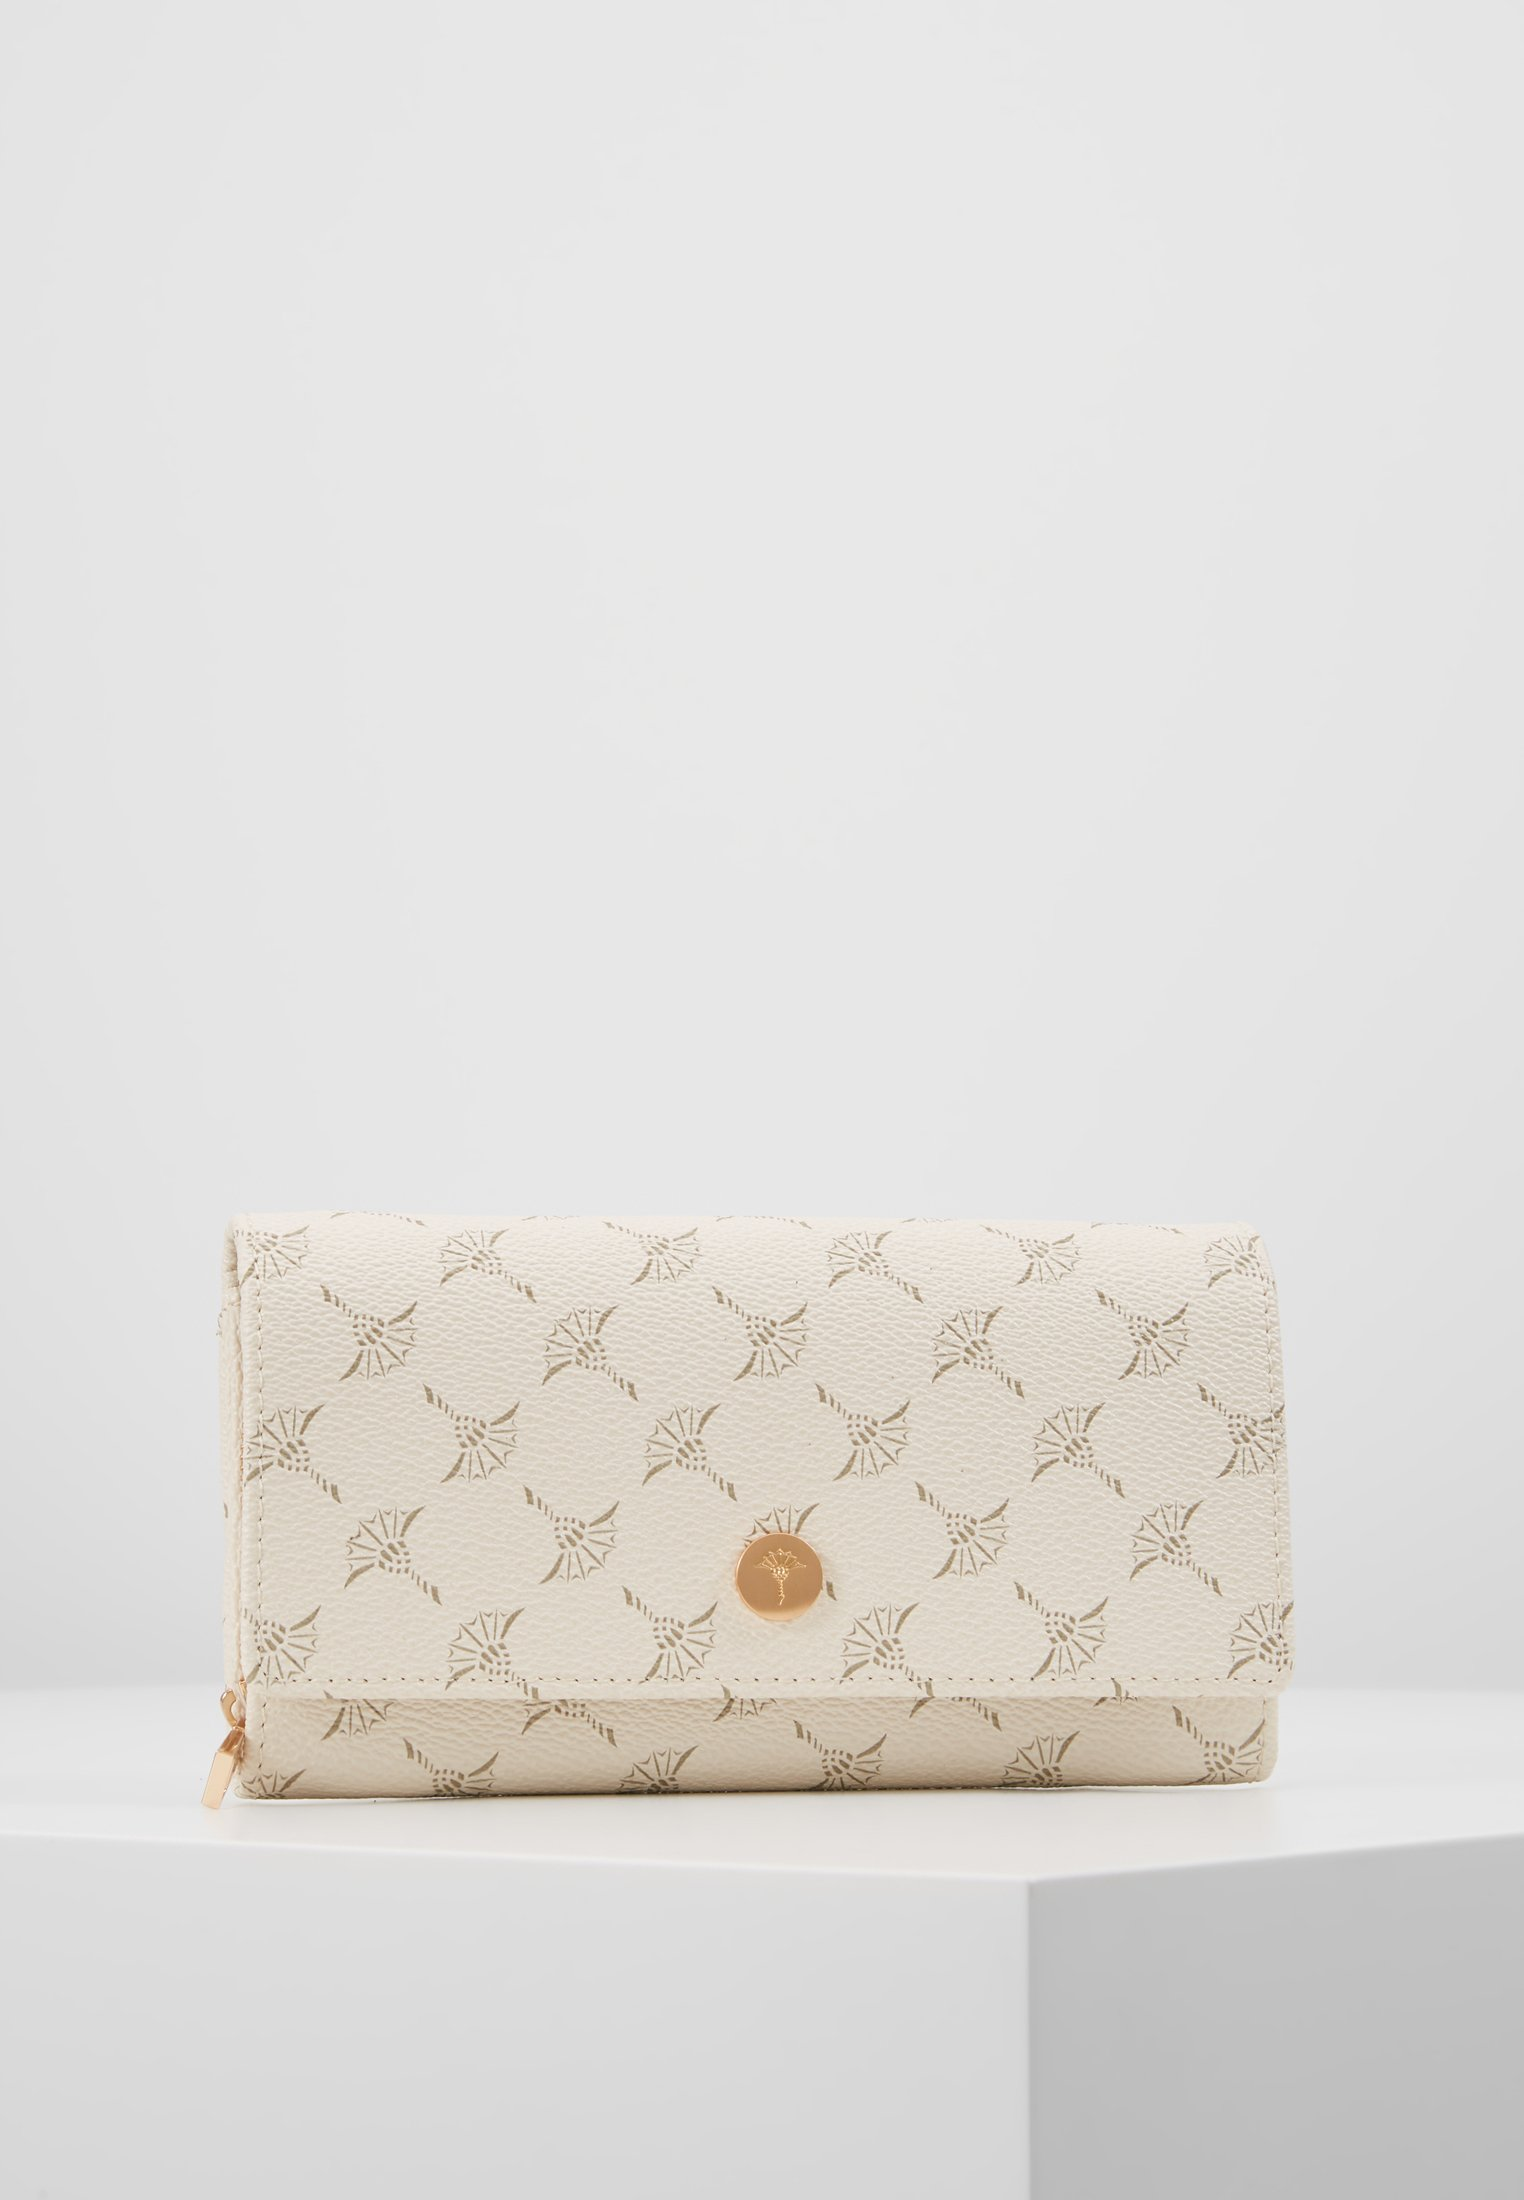 Best Price Outlet JOOP! EUROPA CORTINA  - Wallet - offwhite | women's accessories 2020 4J5h2